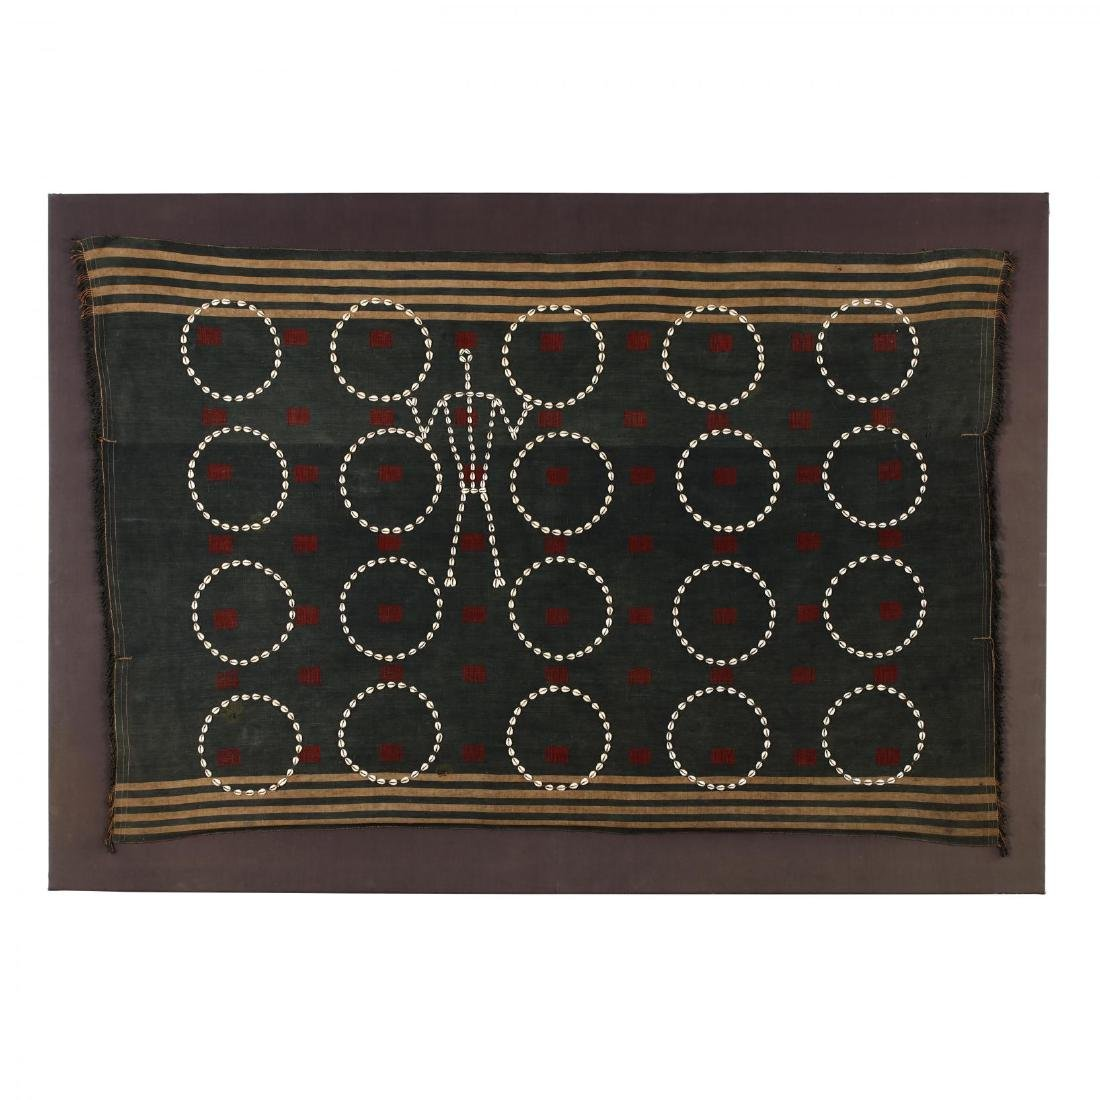 Naga Tribal Blanket with Cowrie Shells